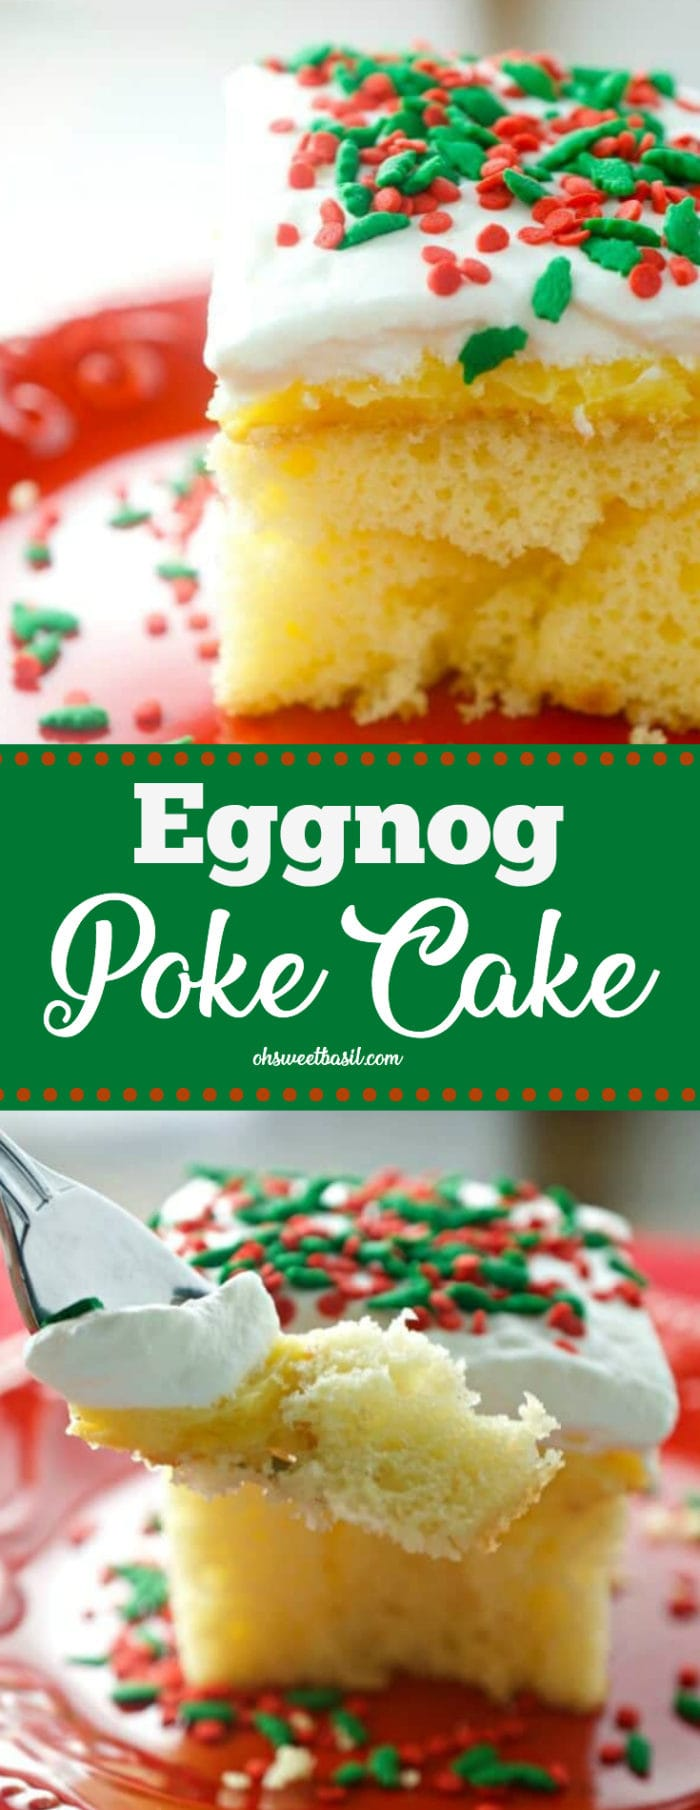 A piece of the easy and festive Eggnog Poke Cake